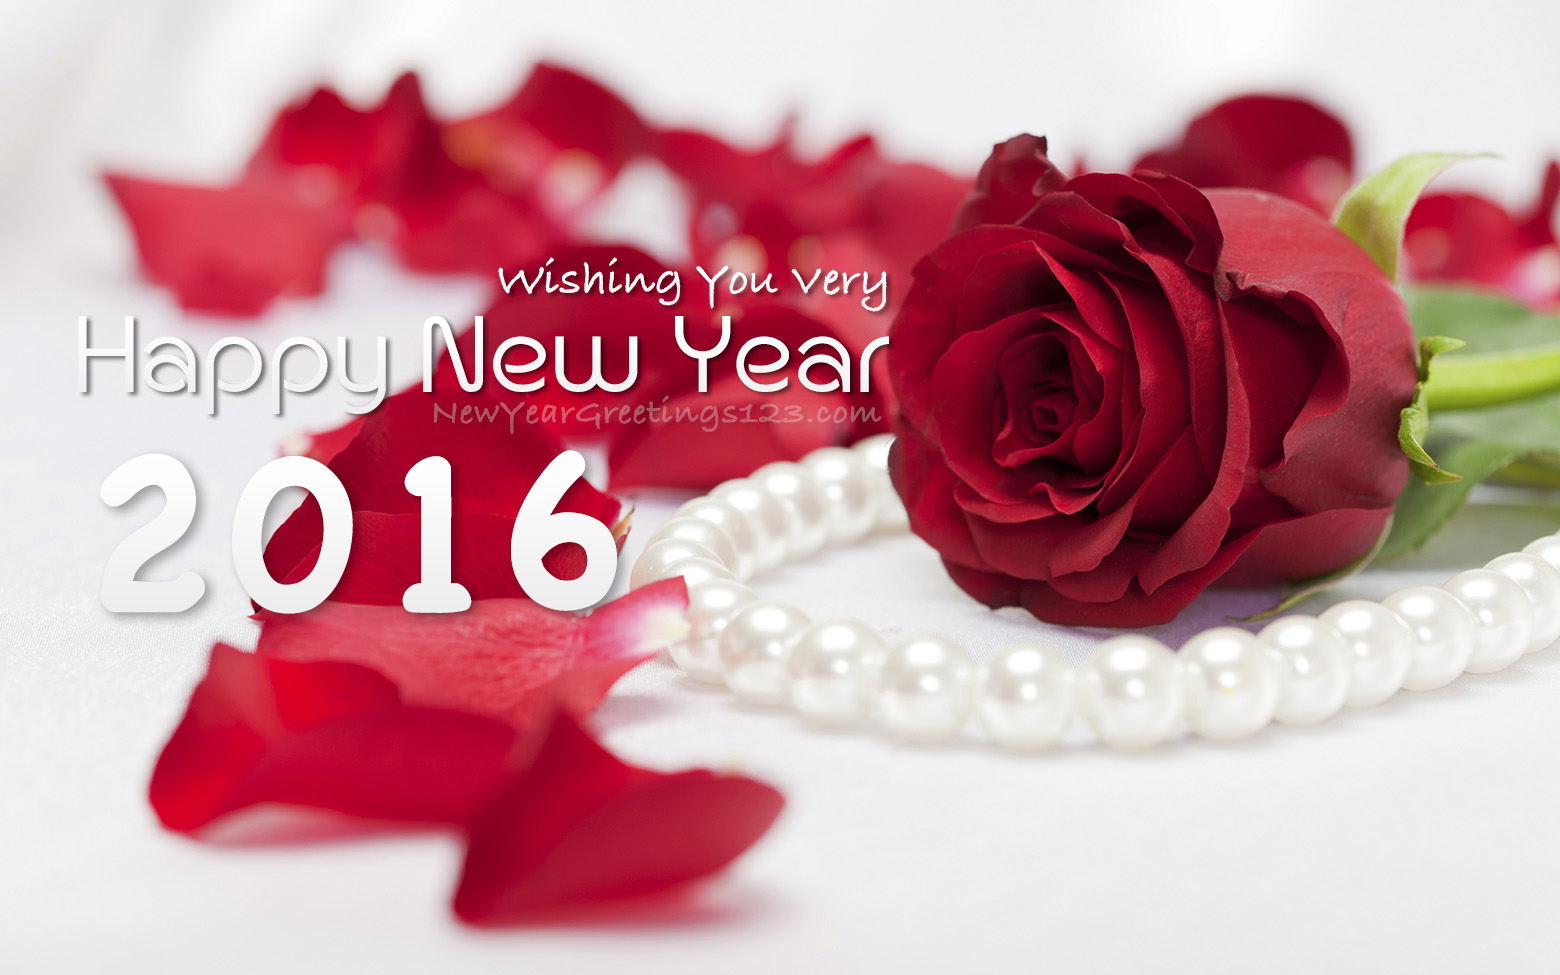 Happy New Year 2017 Wallpaper For Facebook Happy New Year 2018